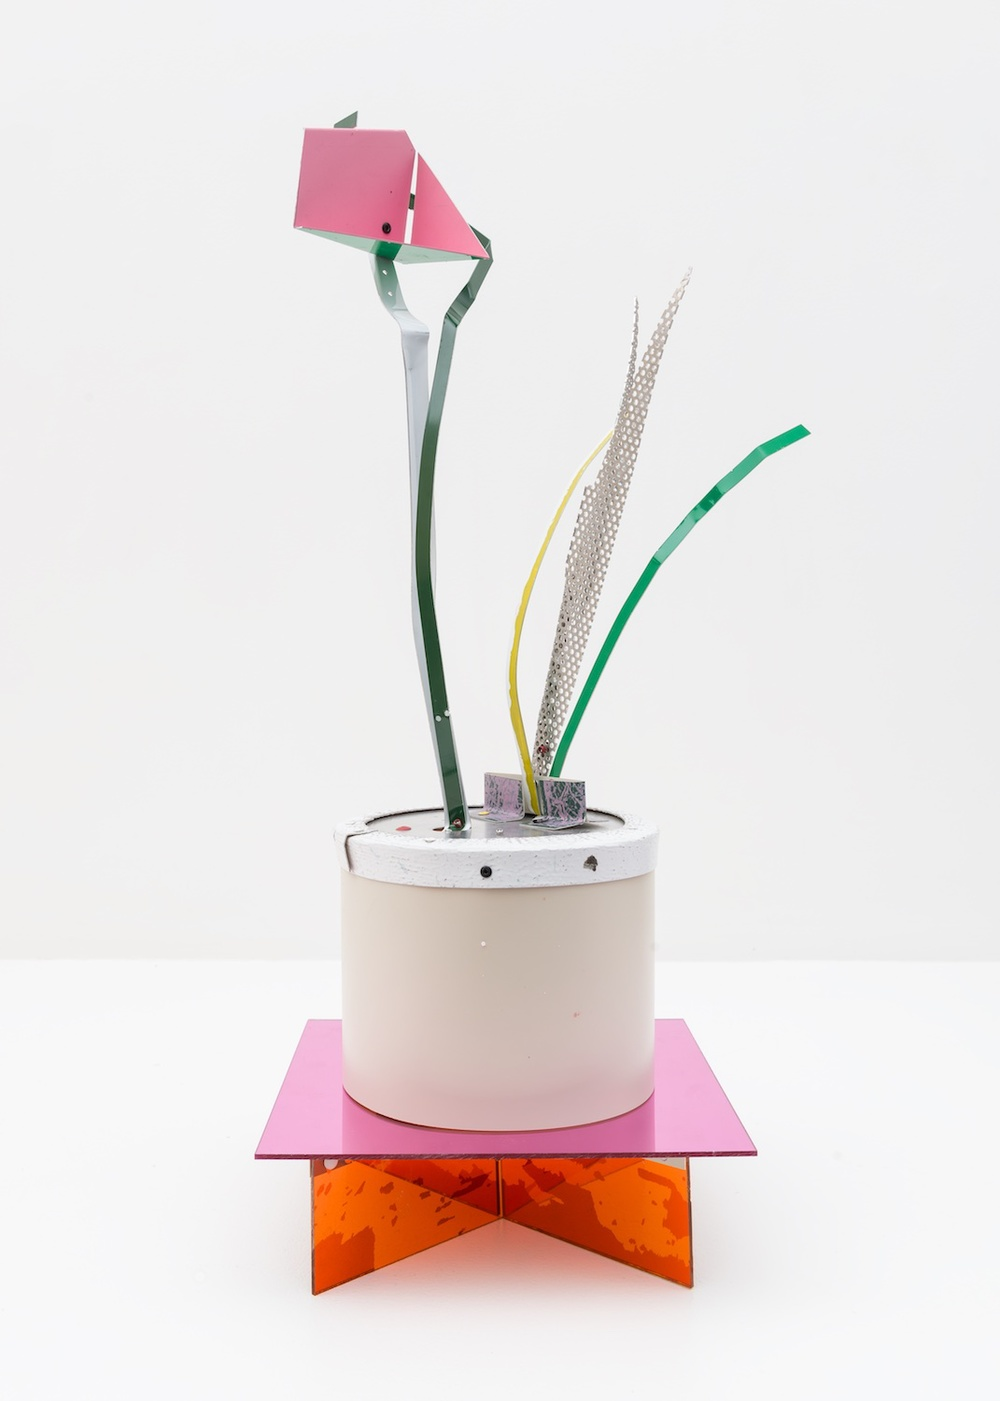 Jason Meadows  Potted Plant  2015 Painted aluminum and plexiglass base 25 ¼h x 10w x 10d in JM022